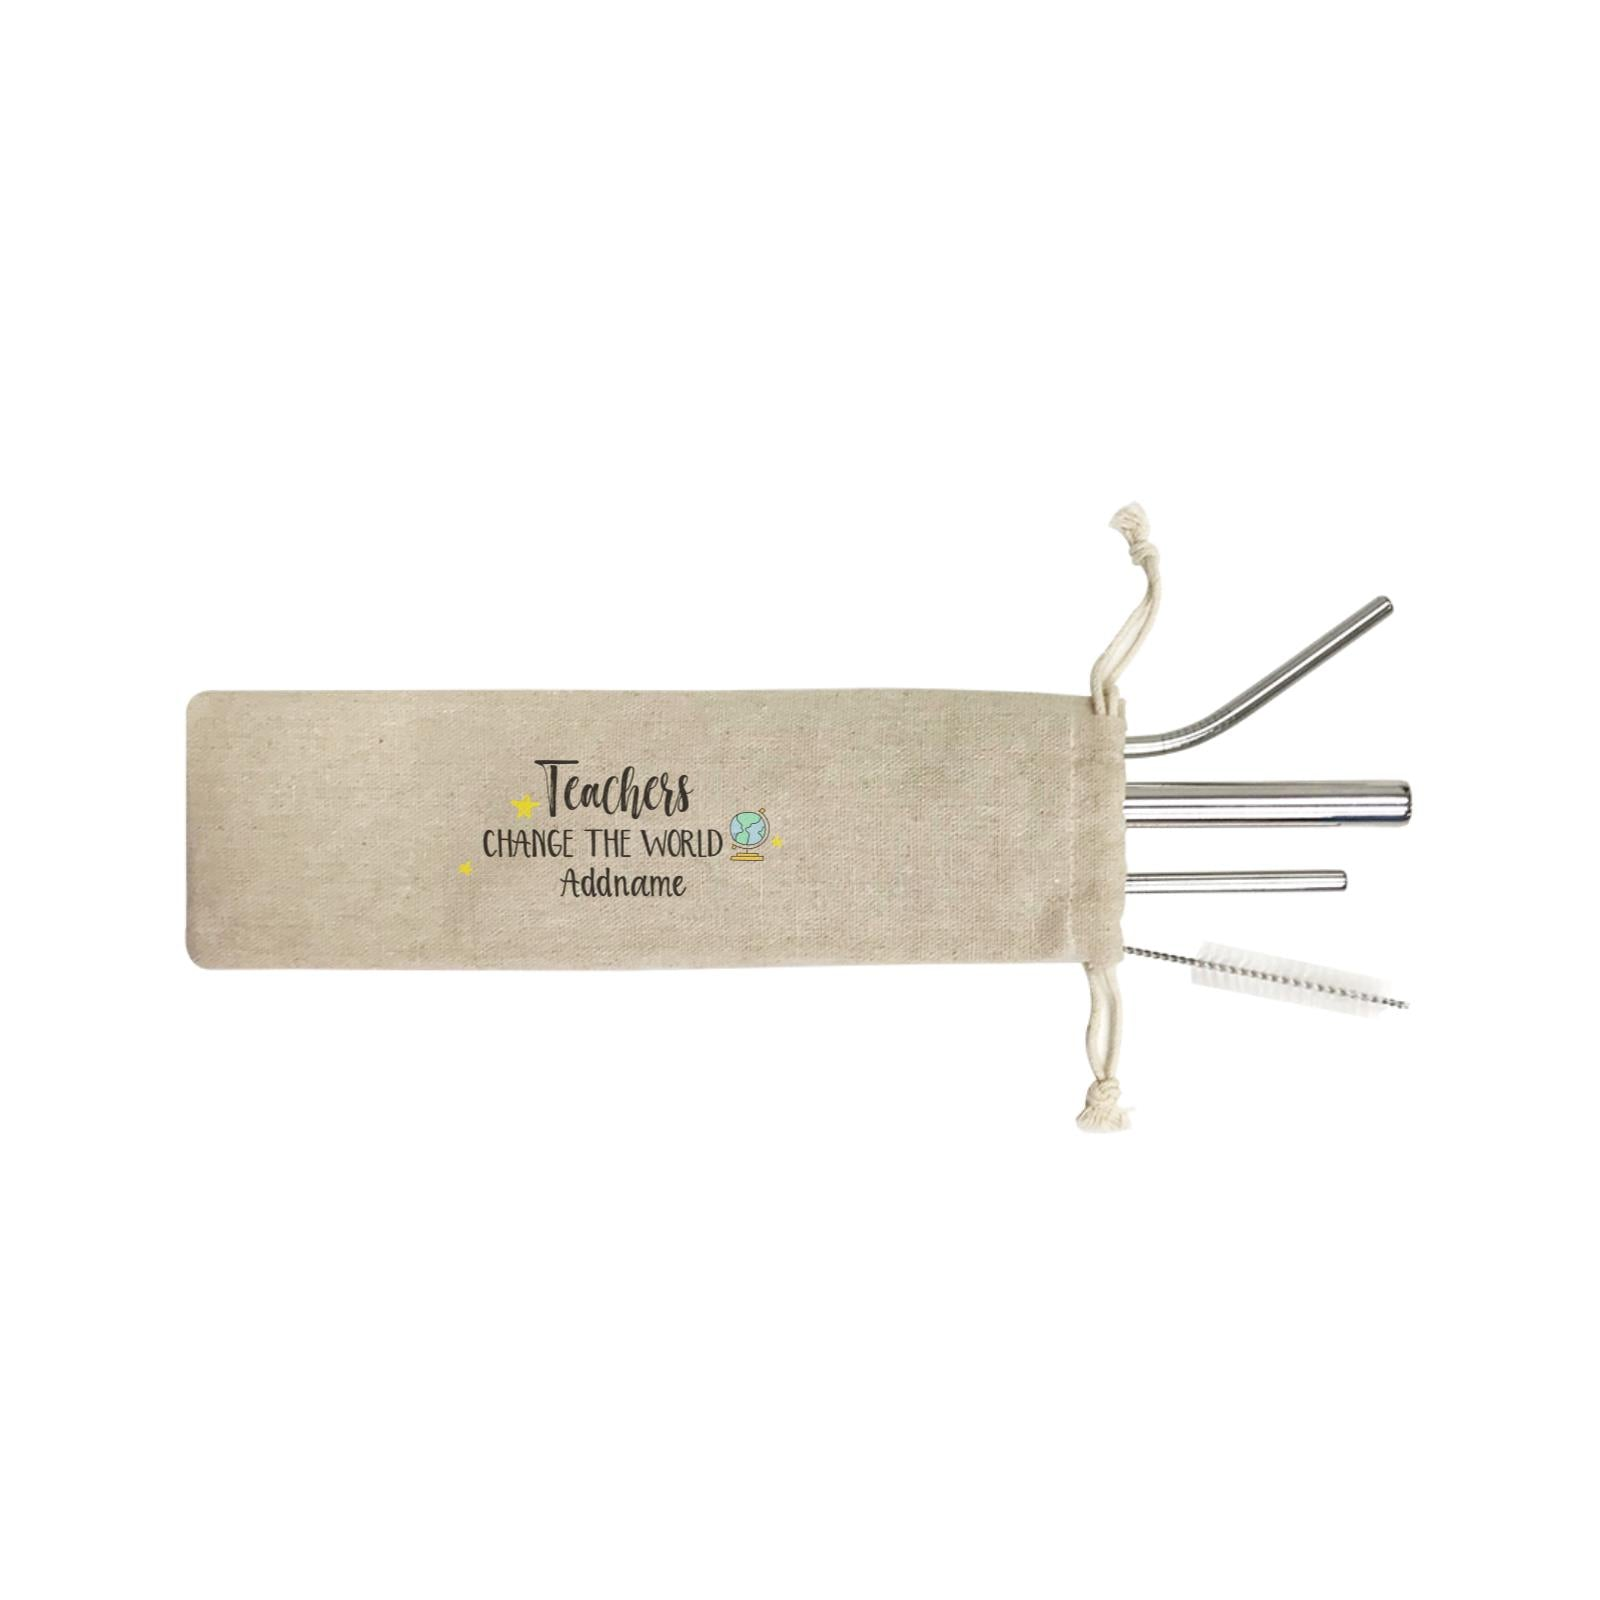 Teacher Quotes Teachers Change The World Addname SB 4-In-1 Stainless Steel Straw Set in Satchel